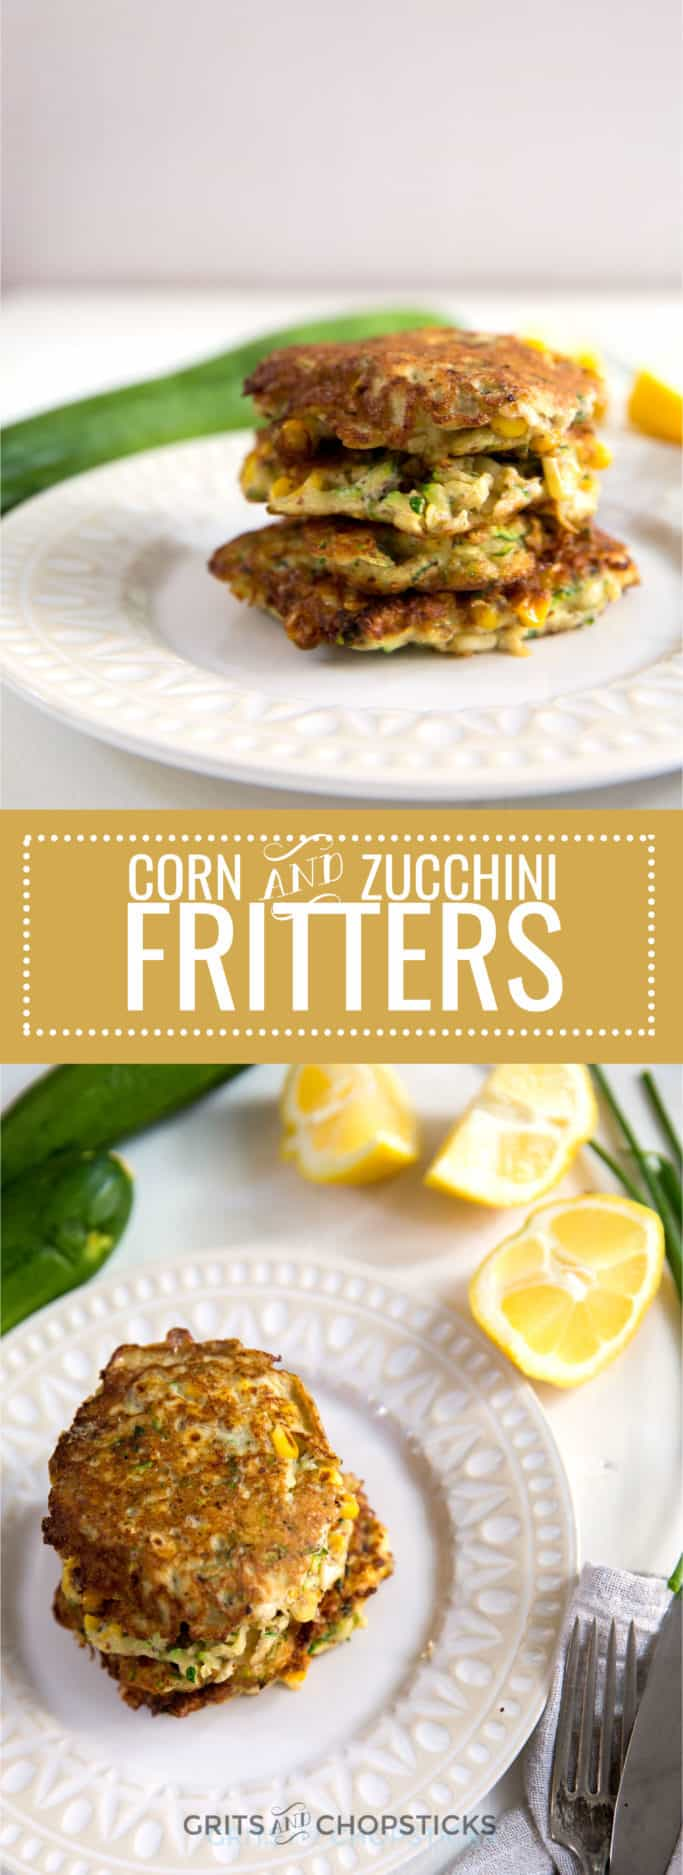 These corn and zucchini fritters are bursting with fresh summer vegetable flavor and a great Meatless Monday option